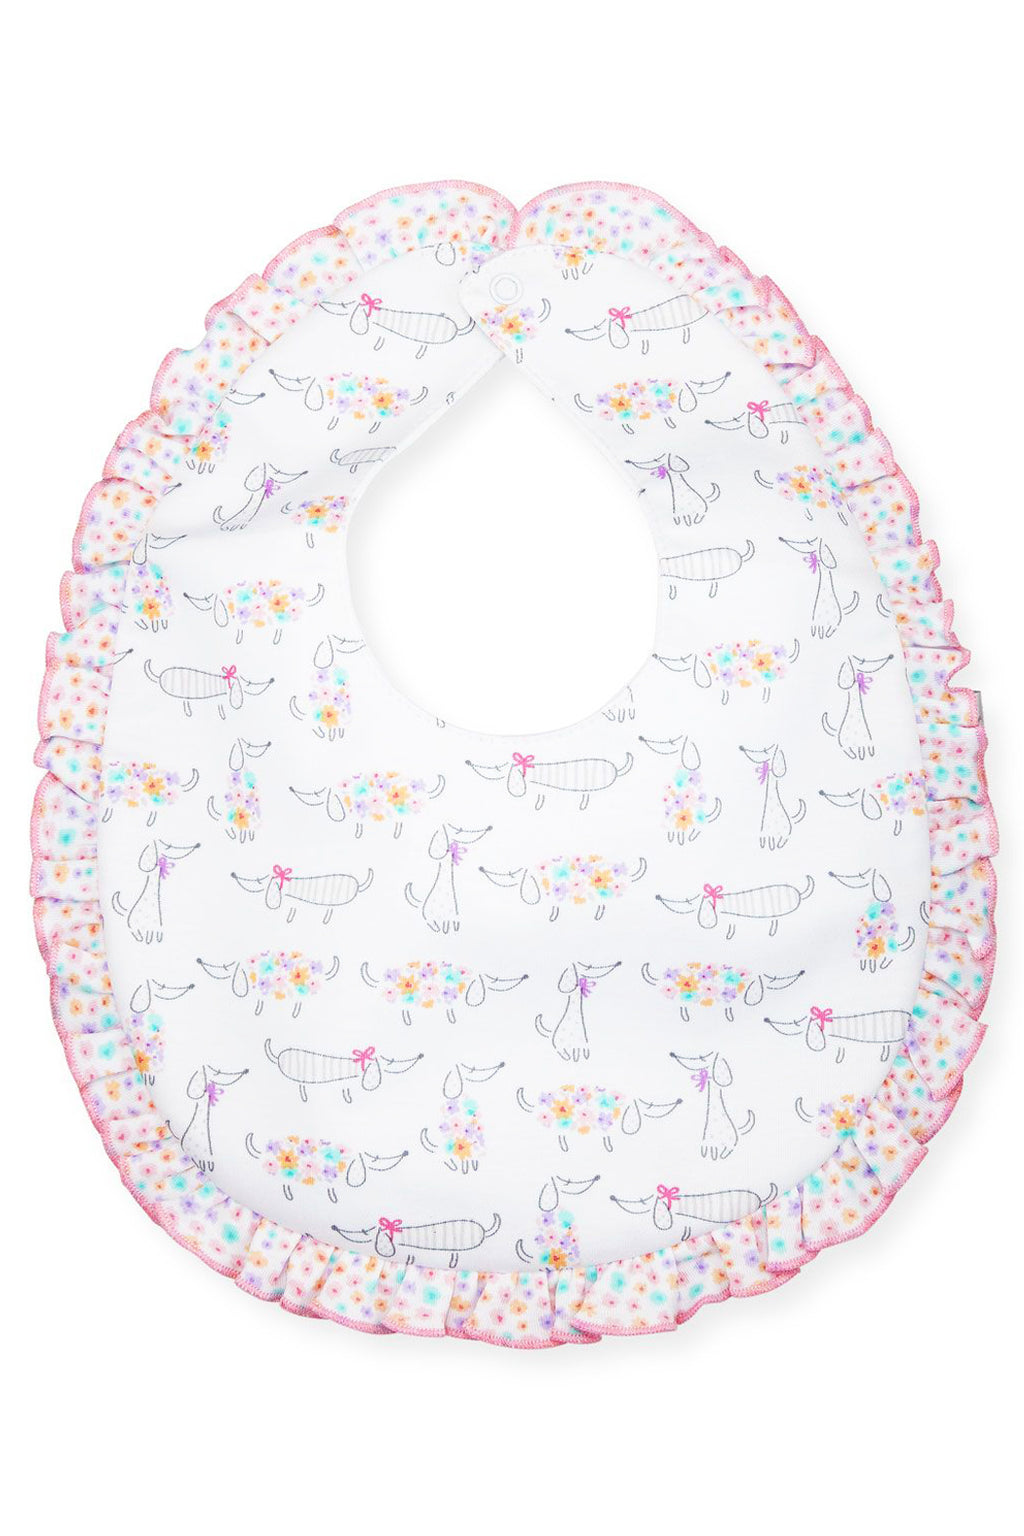 Kissy Kissy - Darling Dachshunds Ruffle Bib - kkgivingtree - K&K's Giving Tree